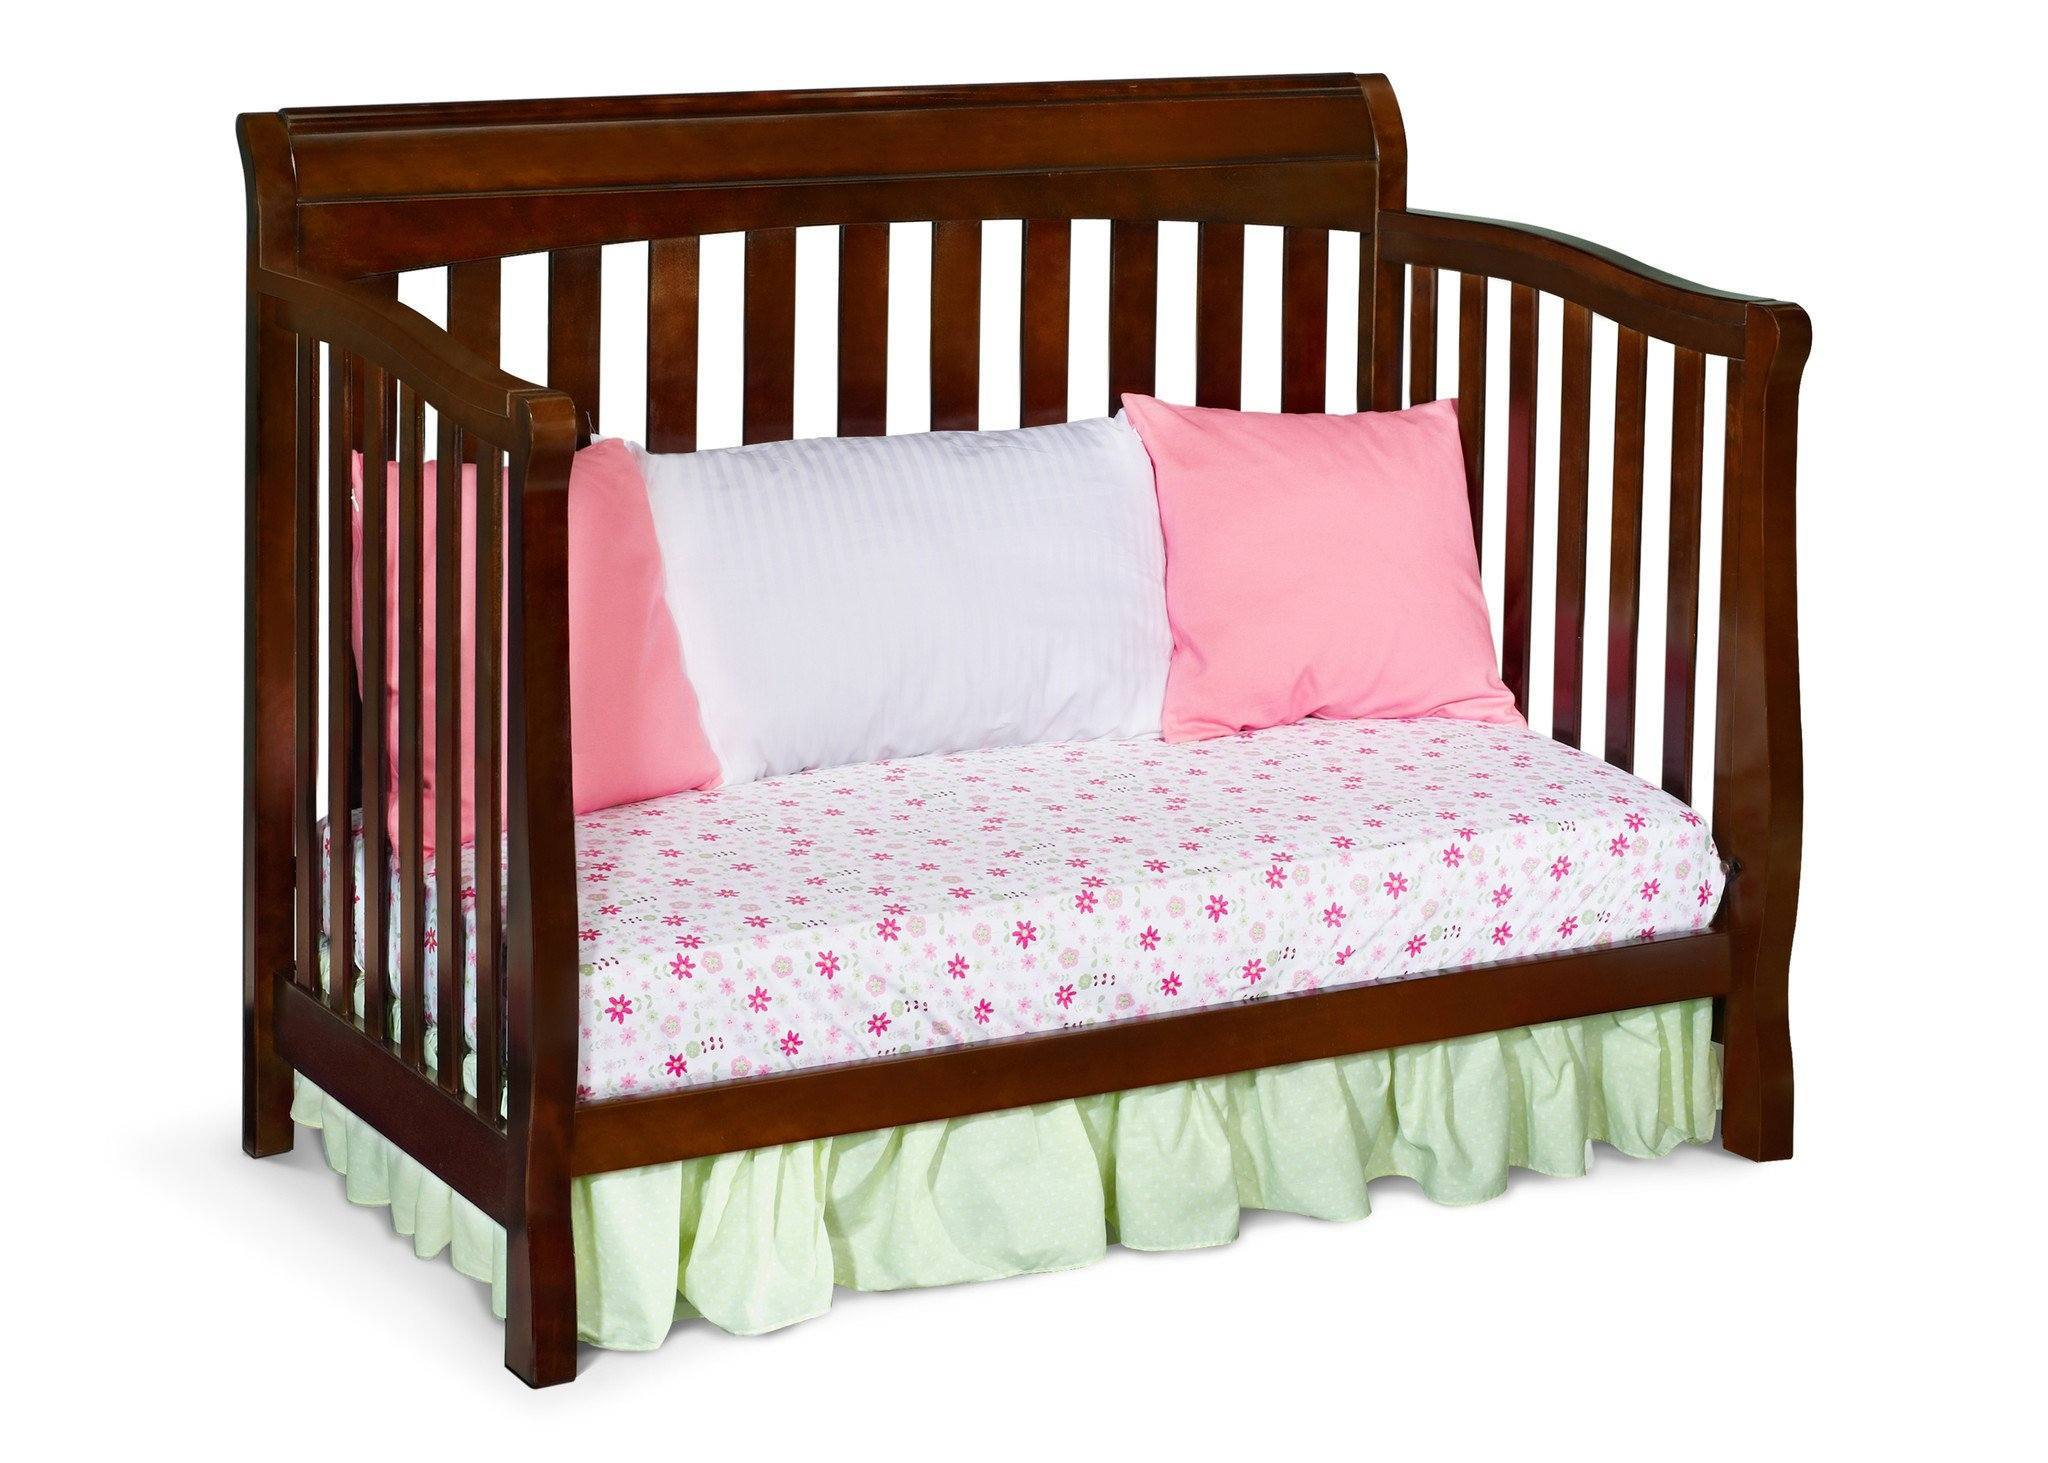 Delta Childrens Black Cherry Espresso (607) Eclipse 4-in-1 Day Bed Conversion c5c